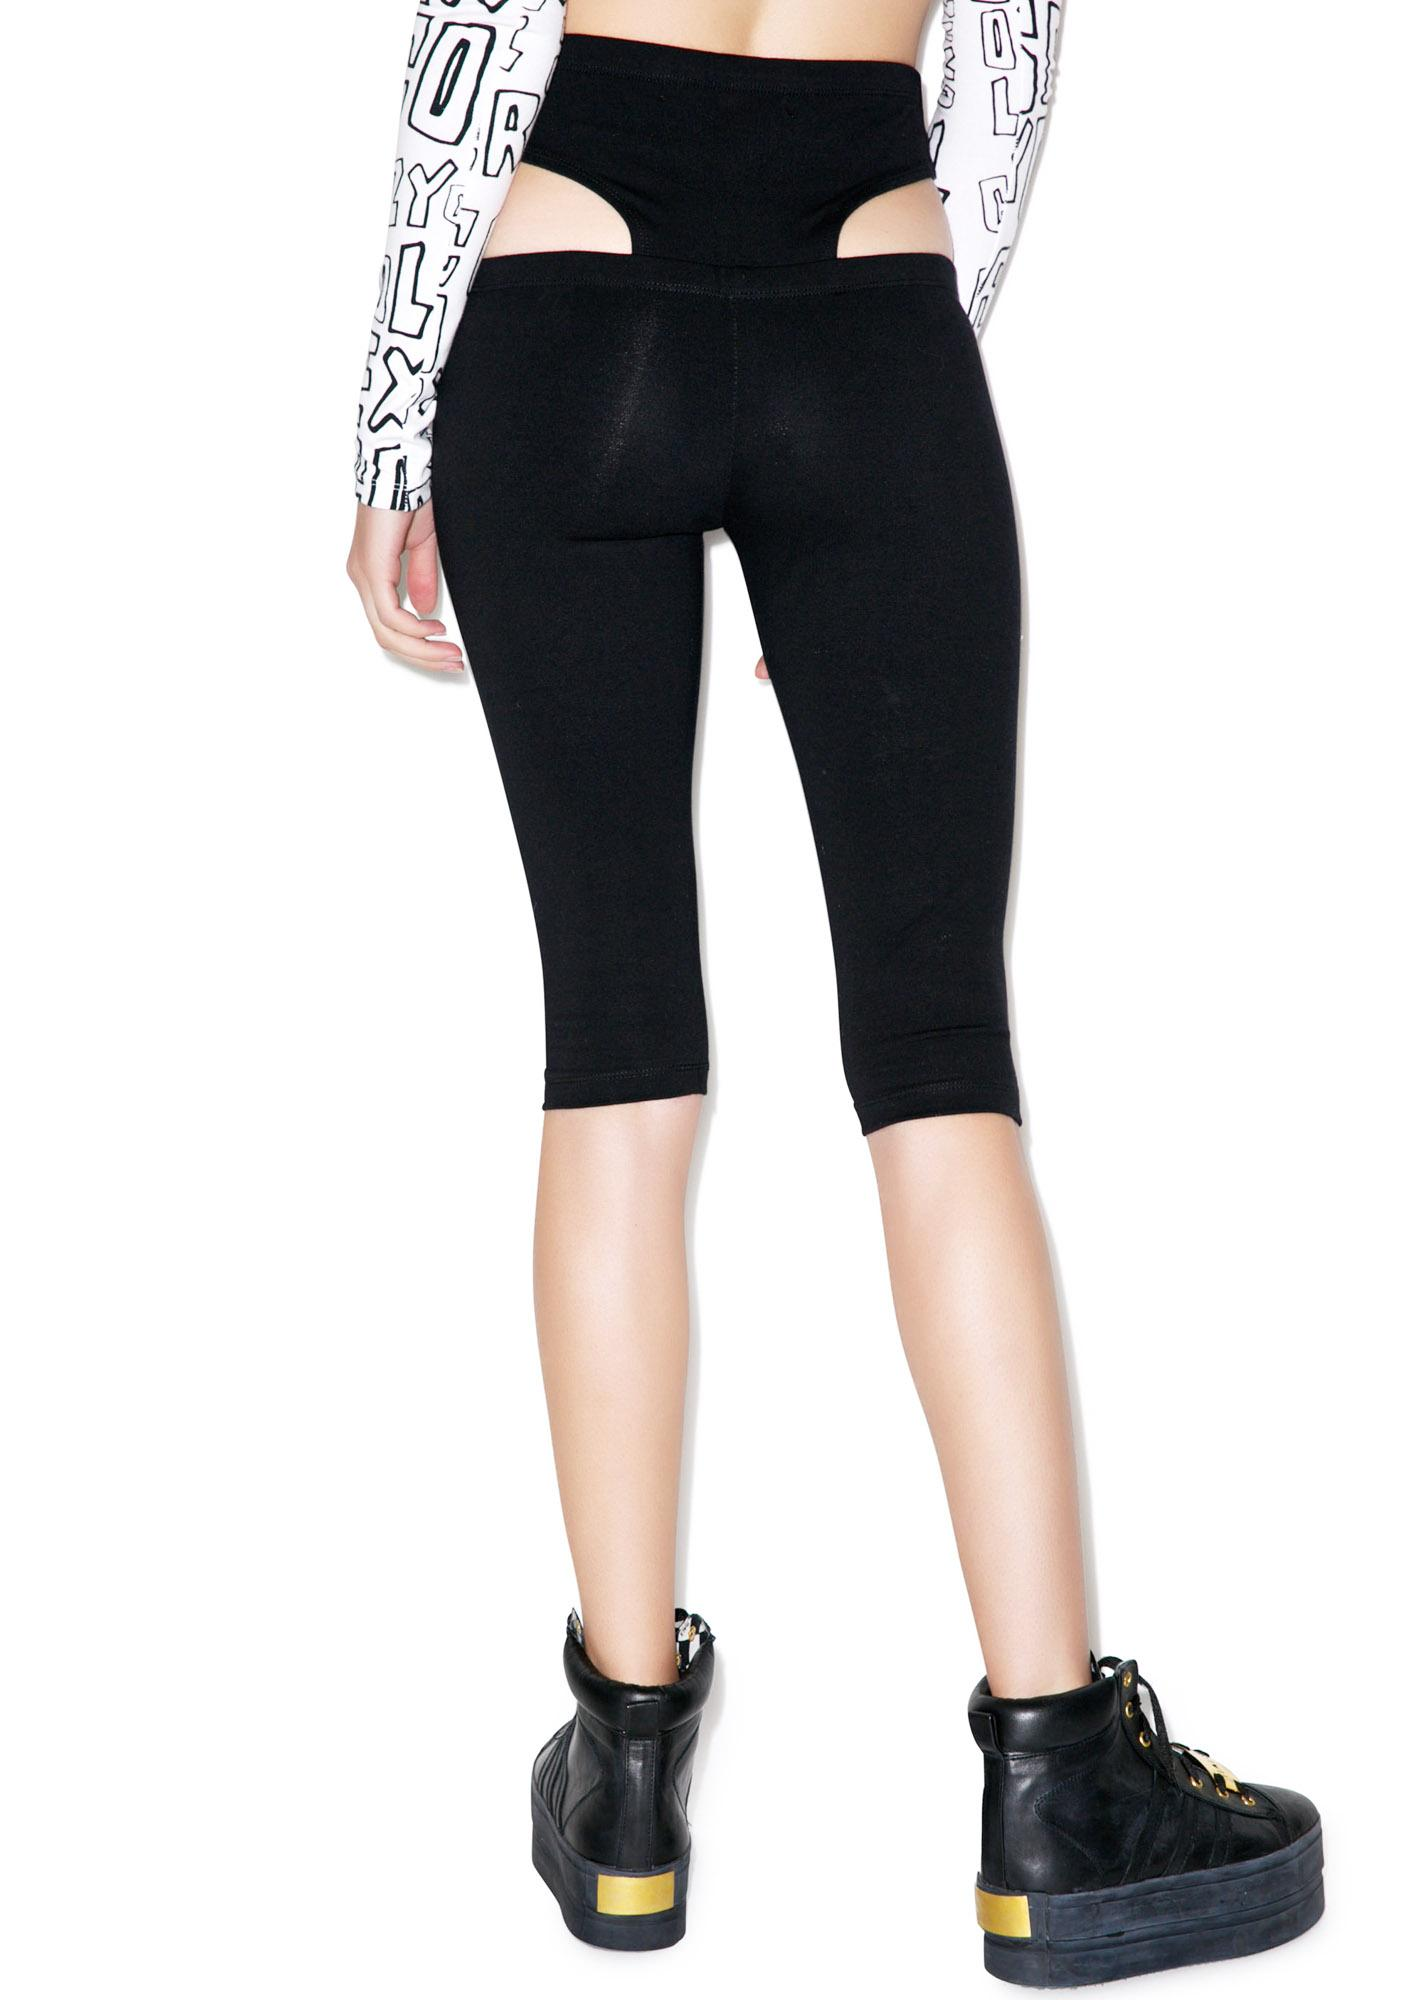 This Is A Love Song Limo Leggings